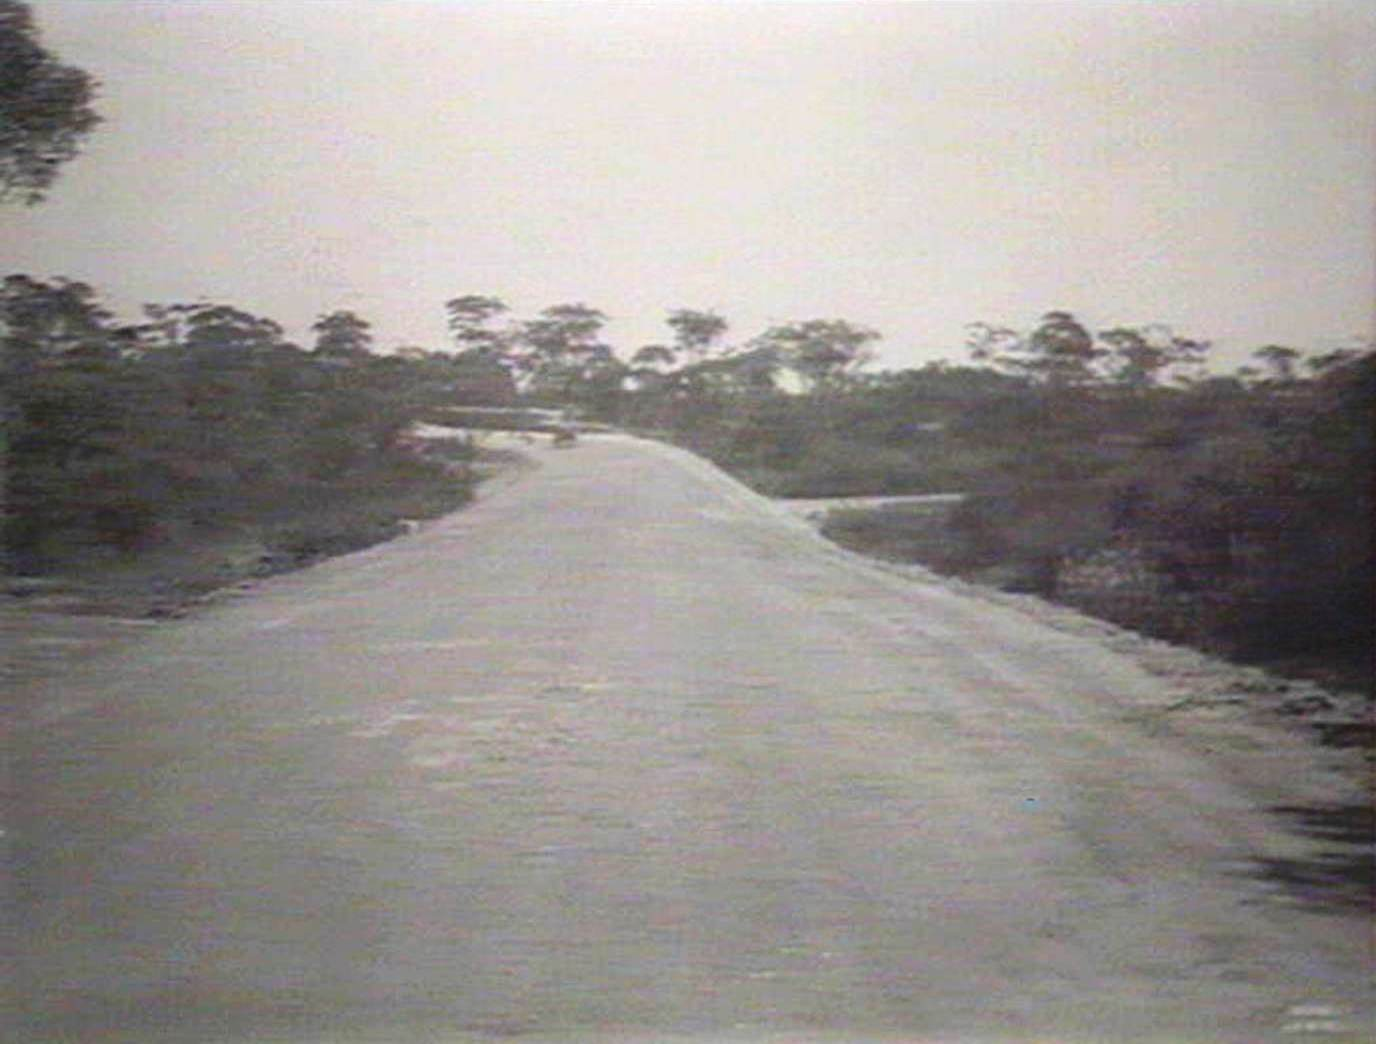 medium resolution of pittwater rd after construction looking towards pacific highway august 1935 image no d1 21454h courtesy state library of nsw